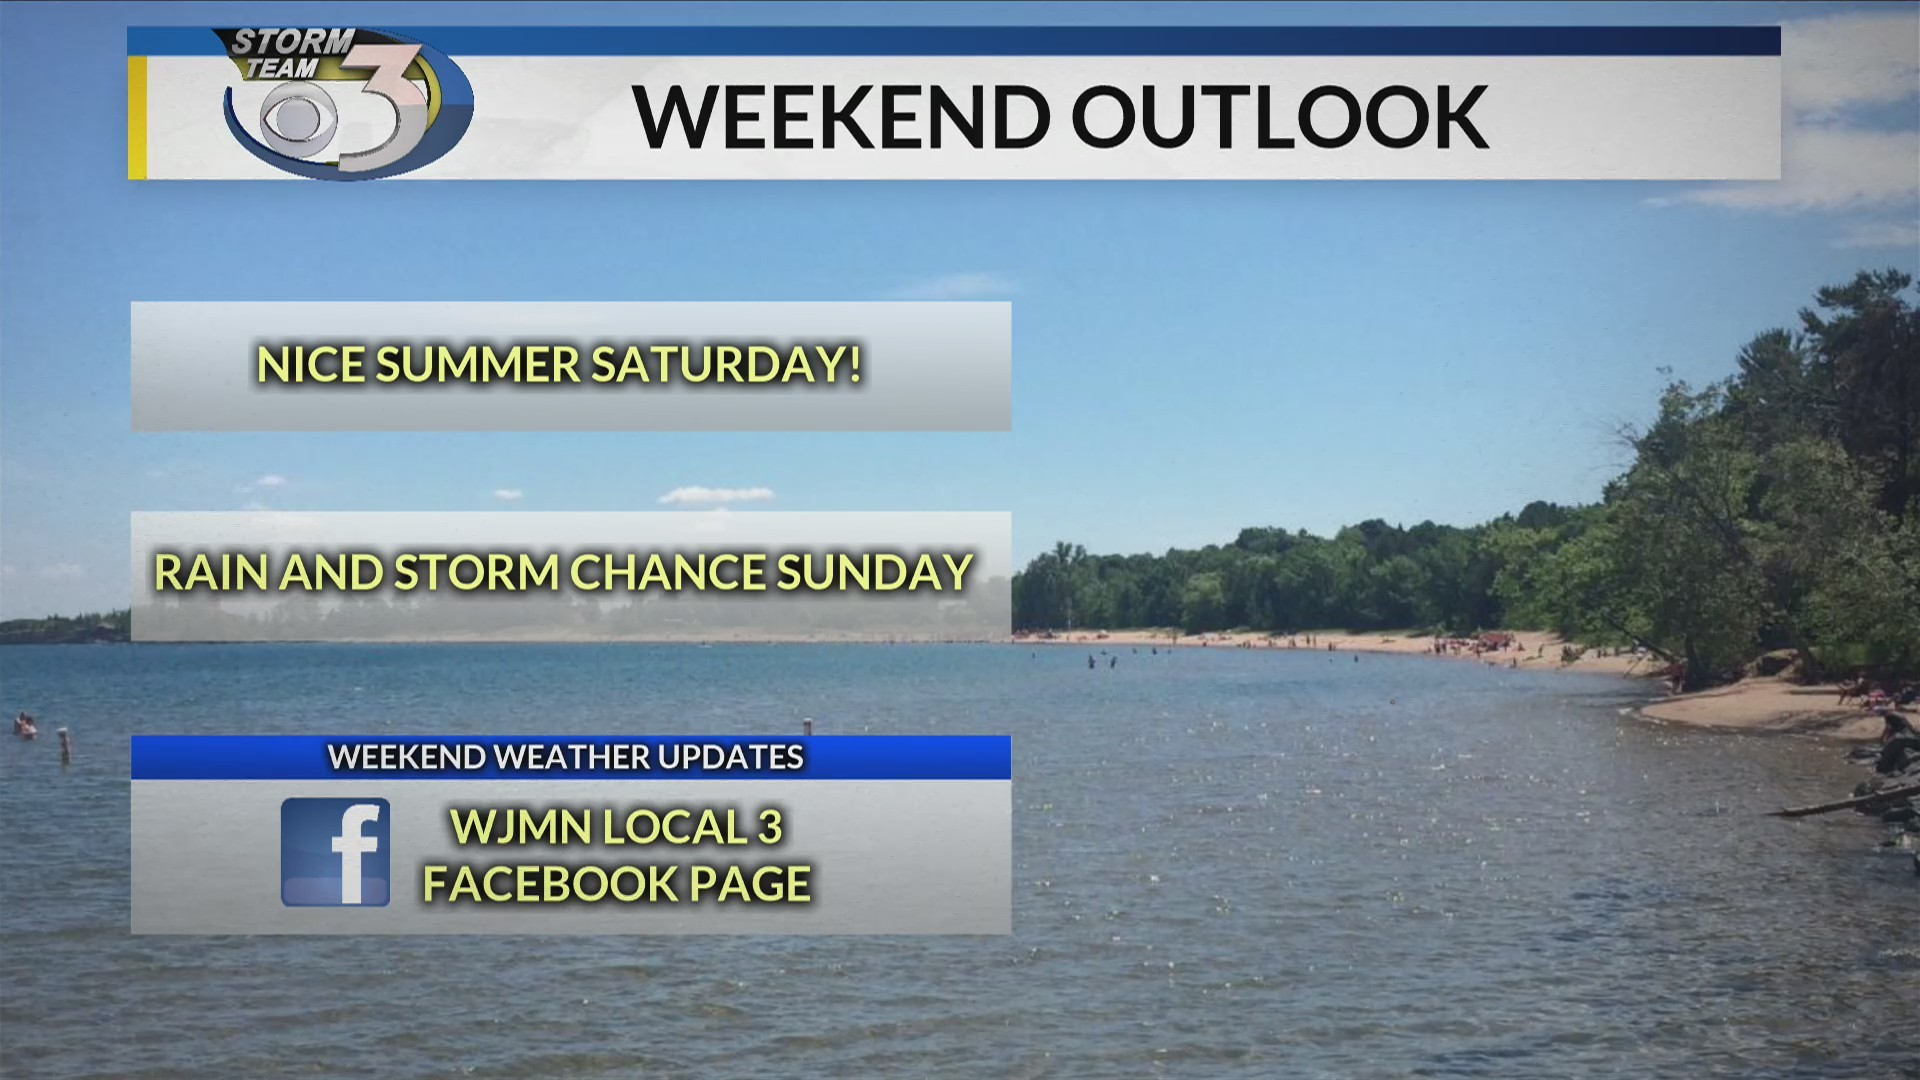 LOCAL 3 WEEKEND WEATHER FORECAST 6/22/2019 & 6/23/2019